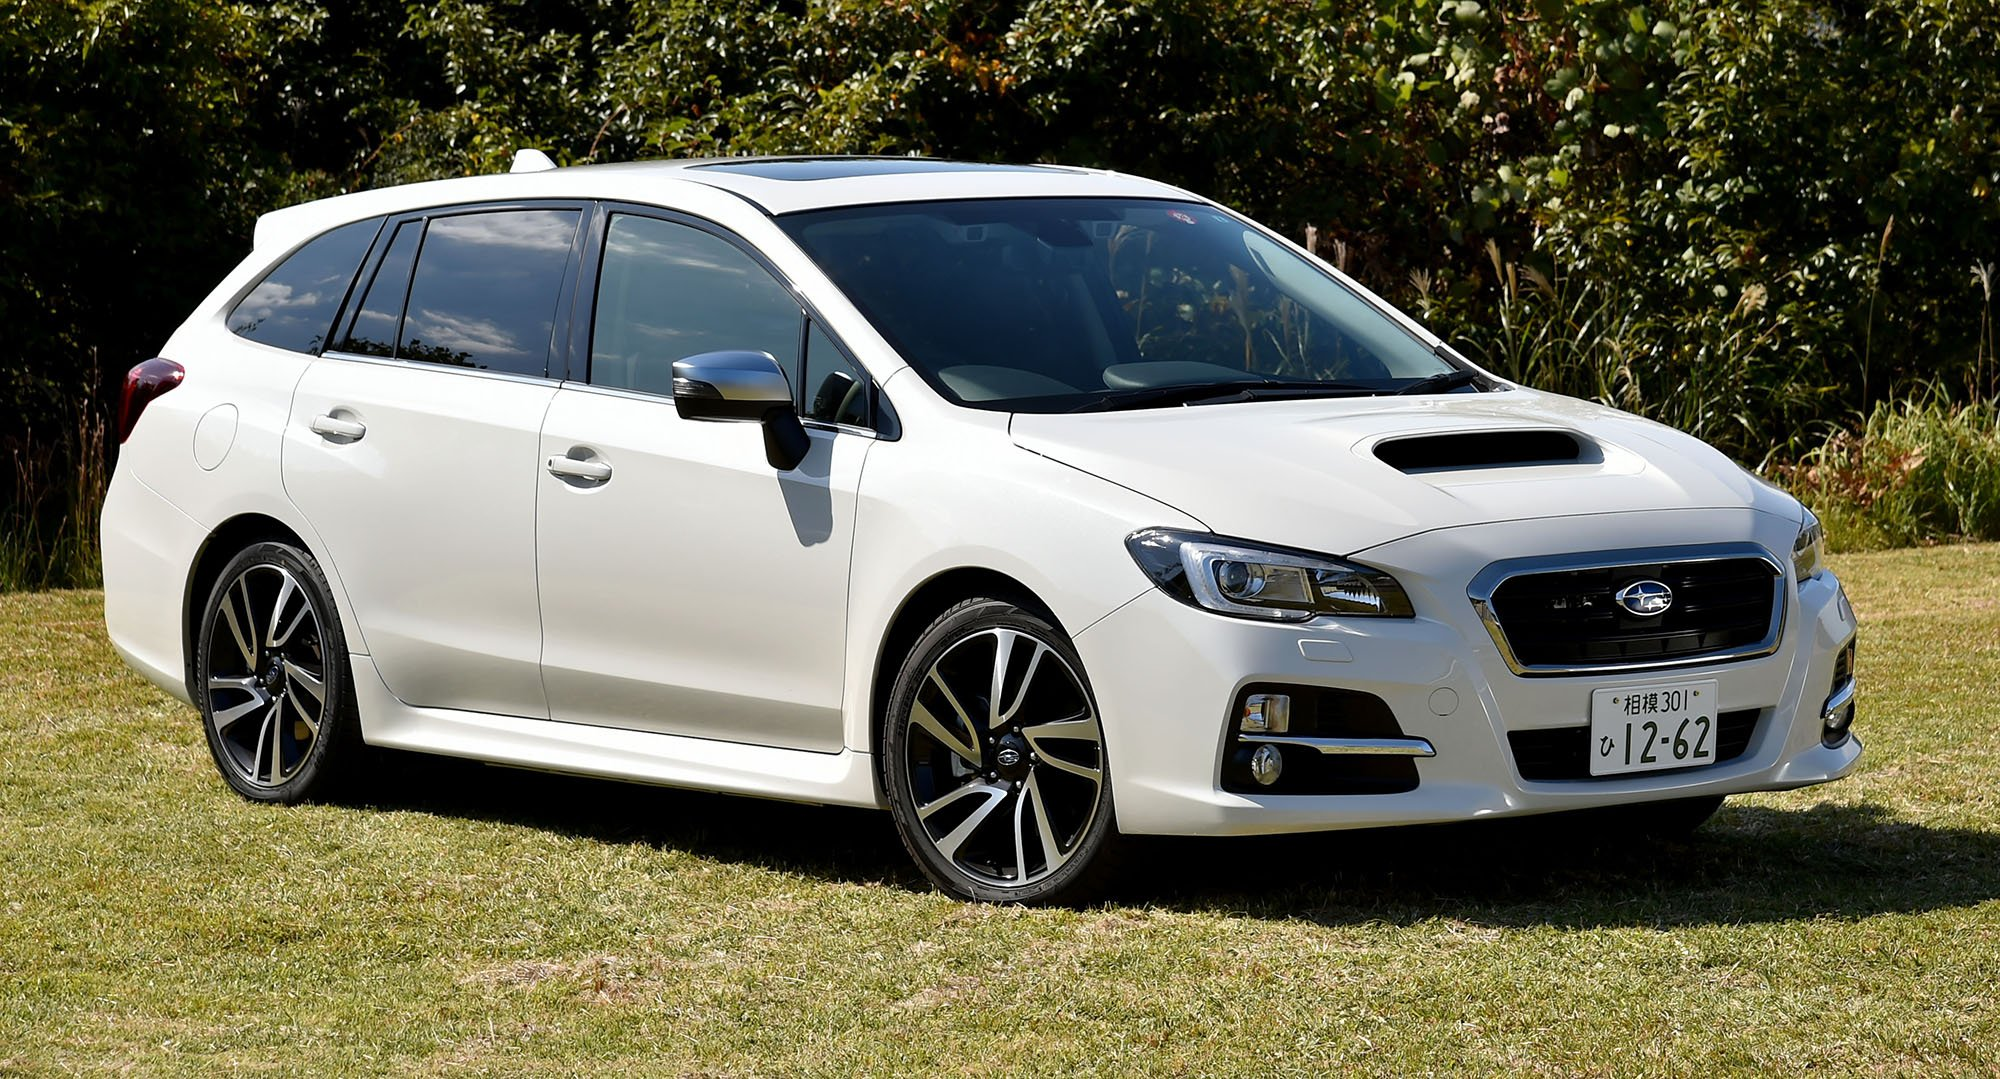 New Ford Gt >> 2016 Subaru Levorg GT Review - photos | CarAdvice